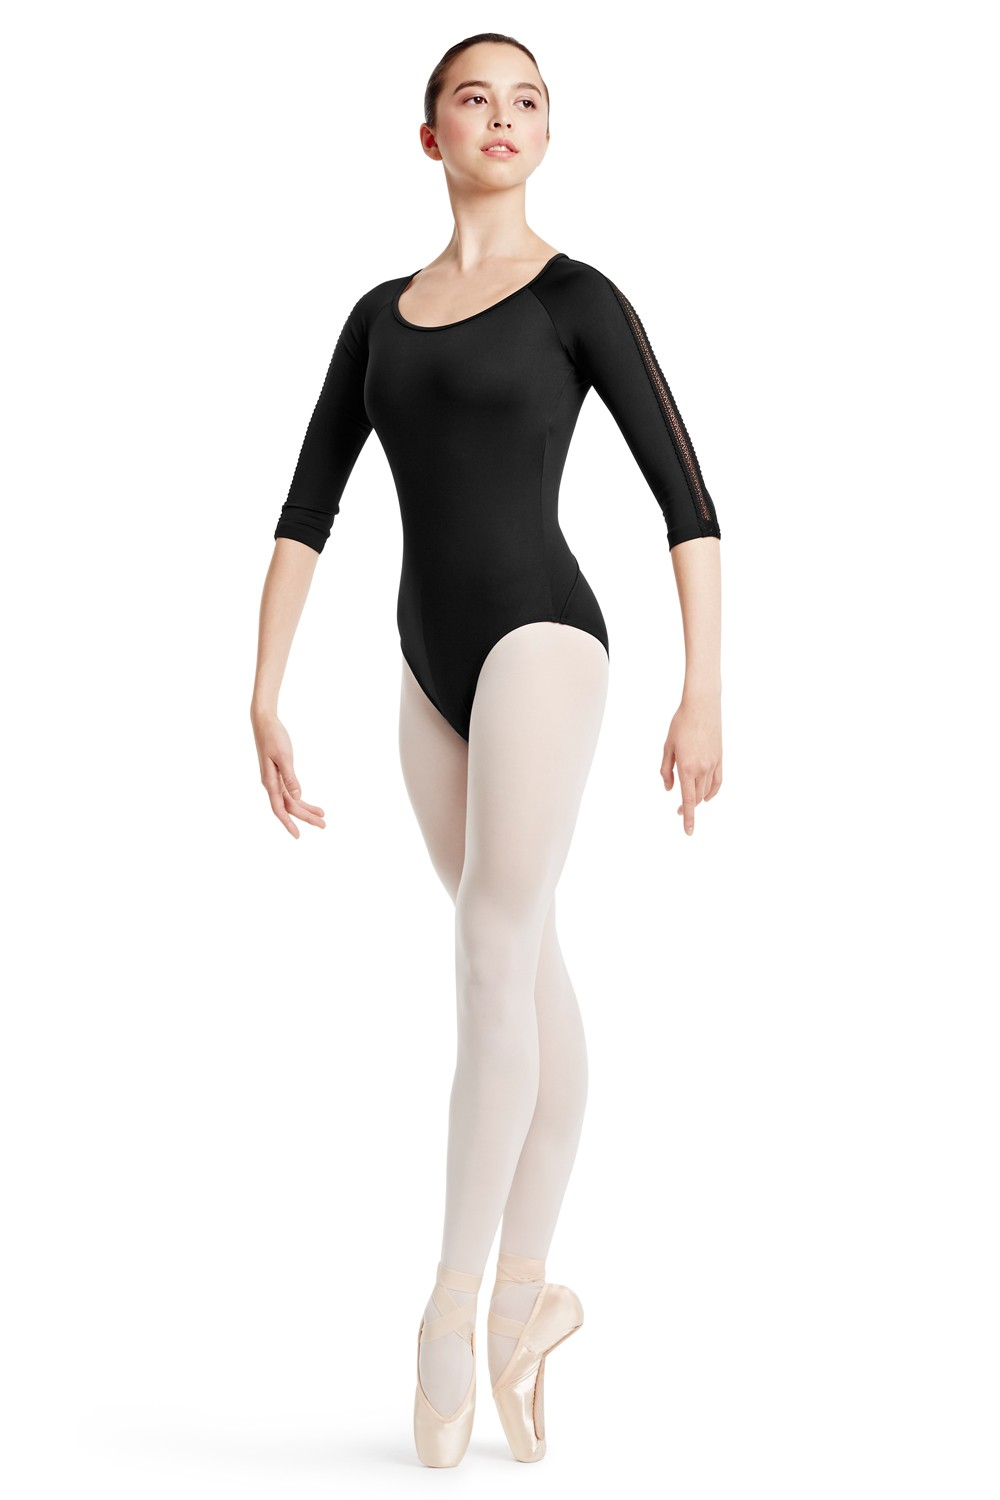 Lace Trim 3/4 Sleeve Women's Dance Leotards